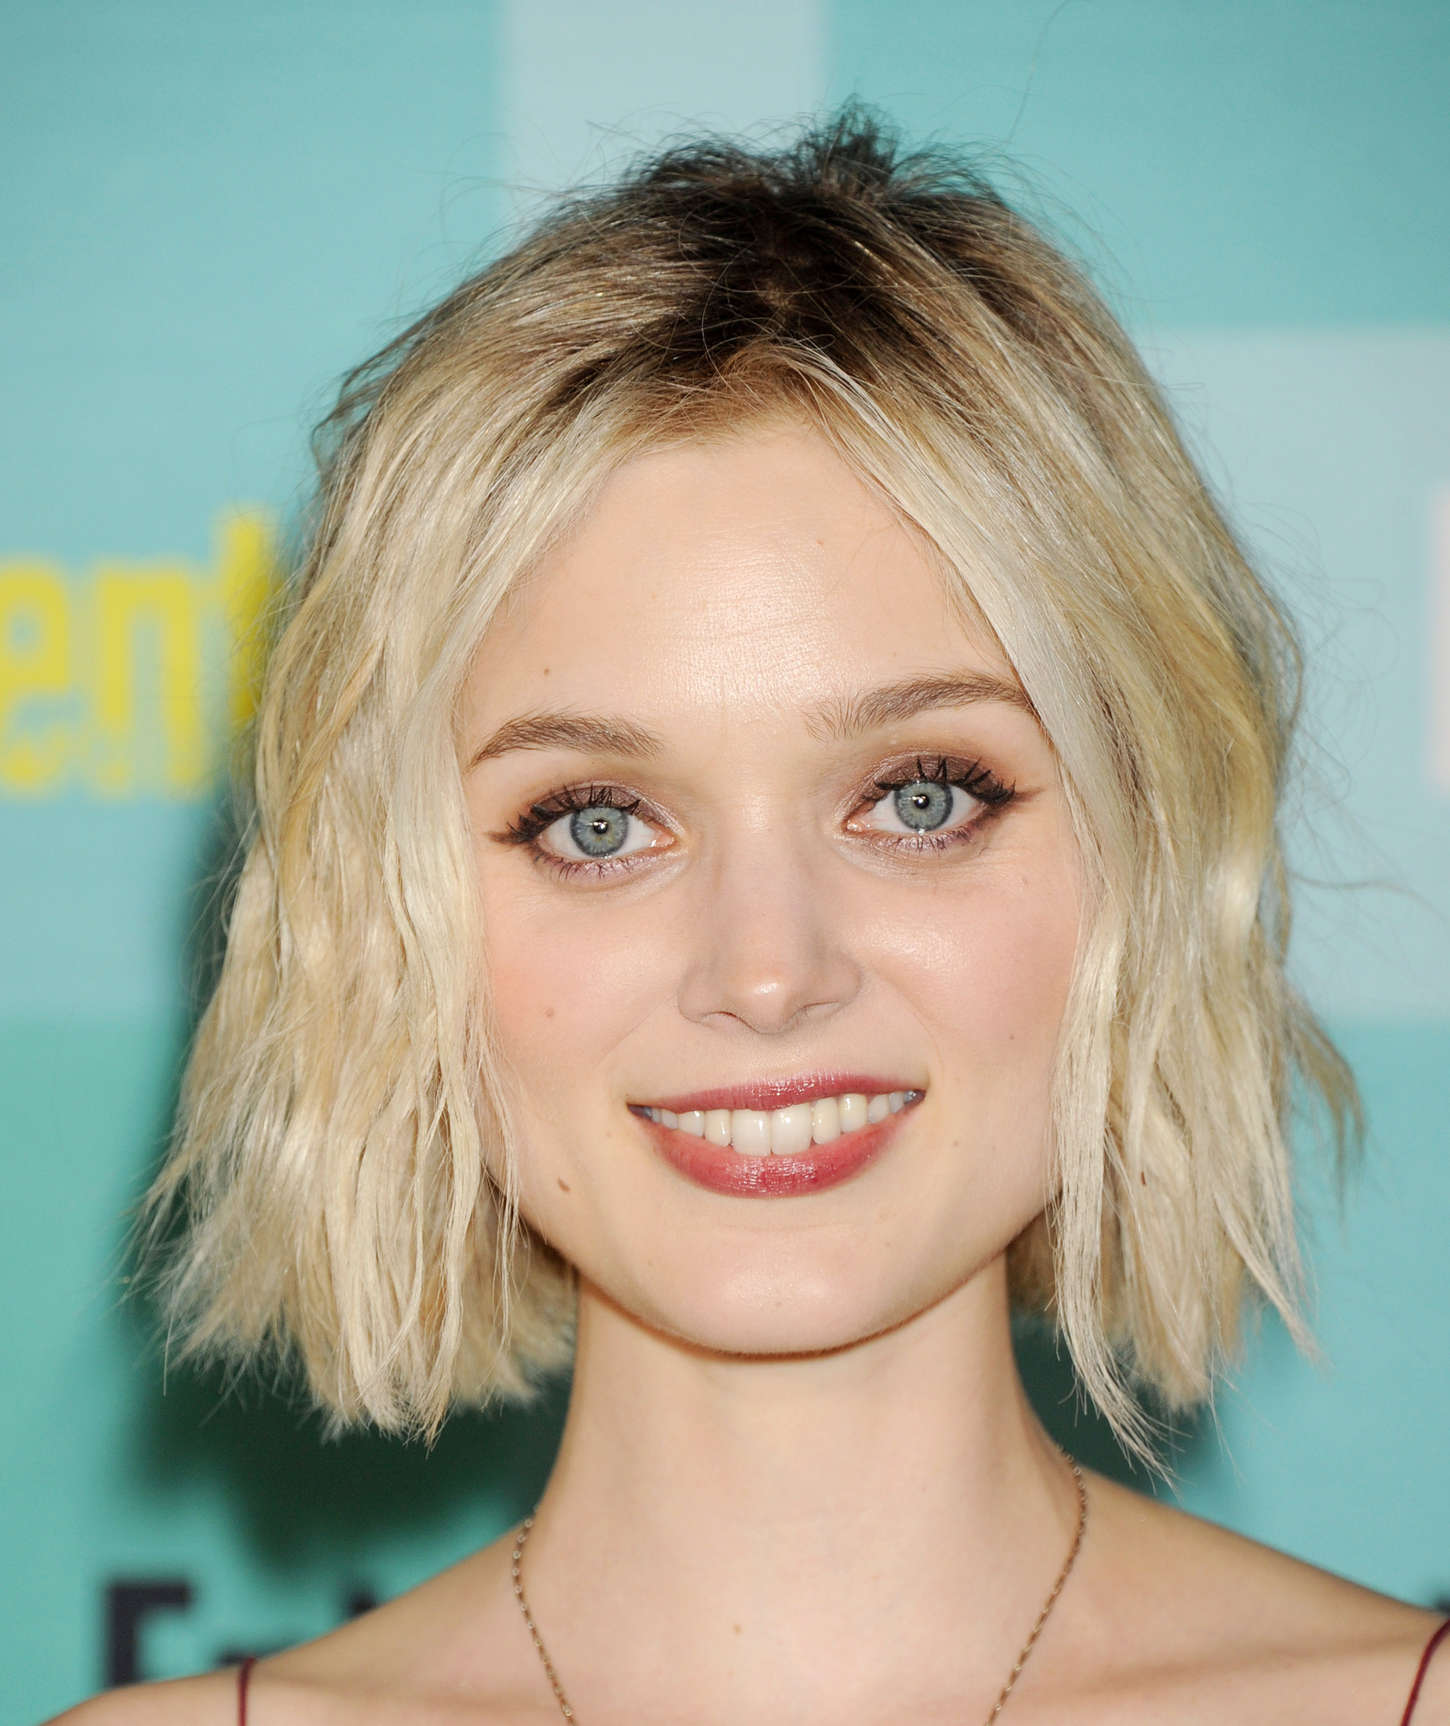 bella heathcote accentbella heathcote gif, bella heathcote tumblr, bella heathcote fifty shades darker, bella heathcote vk, bella heathcote gif tumblr, bella heathcote instagram, bella heathcote kinopoisk, bella heathcote listal, bella heathcote fansite, bella heathcote the rewrite, bella heathcote facebook, bella heathcote wiki, bella heathcote photo, bella heathcote accent, bella heathcote saint laurent, bella heathcote beauty secrets, bella heathcote and douglas booth, bella heathcote natal chart, bella heathcote twitter, bella heathcote gif hunt tumblr